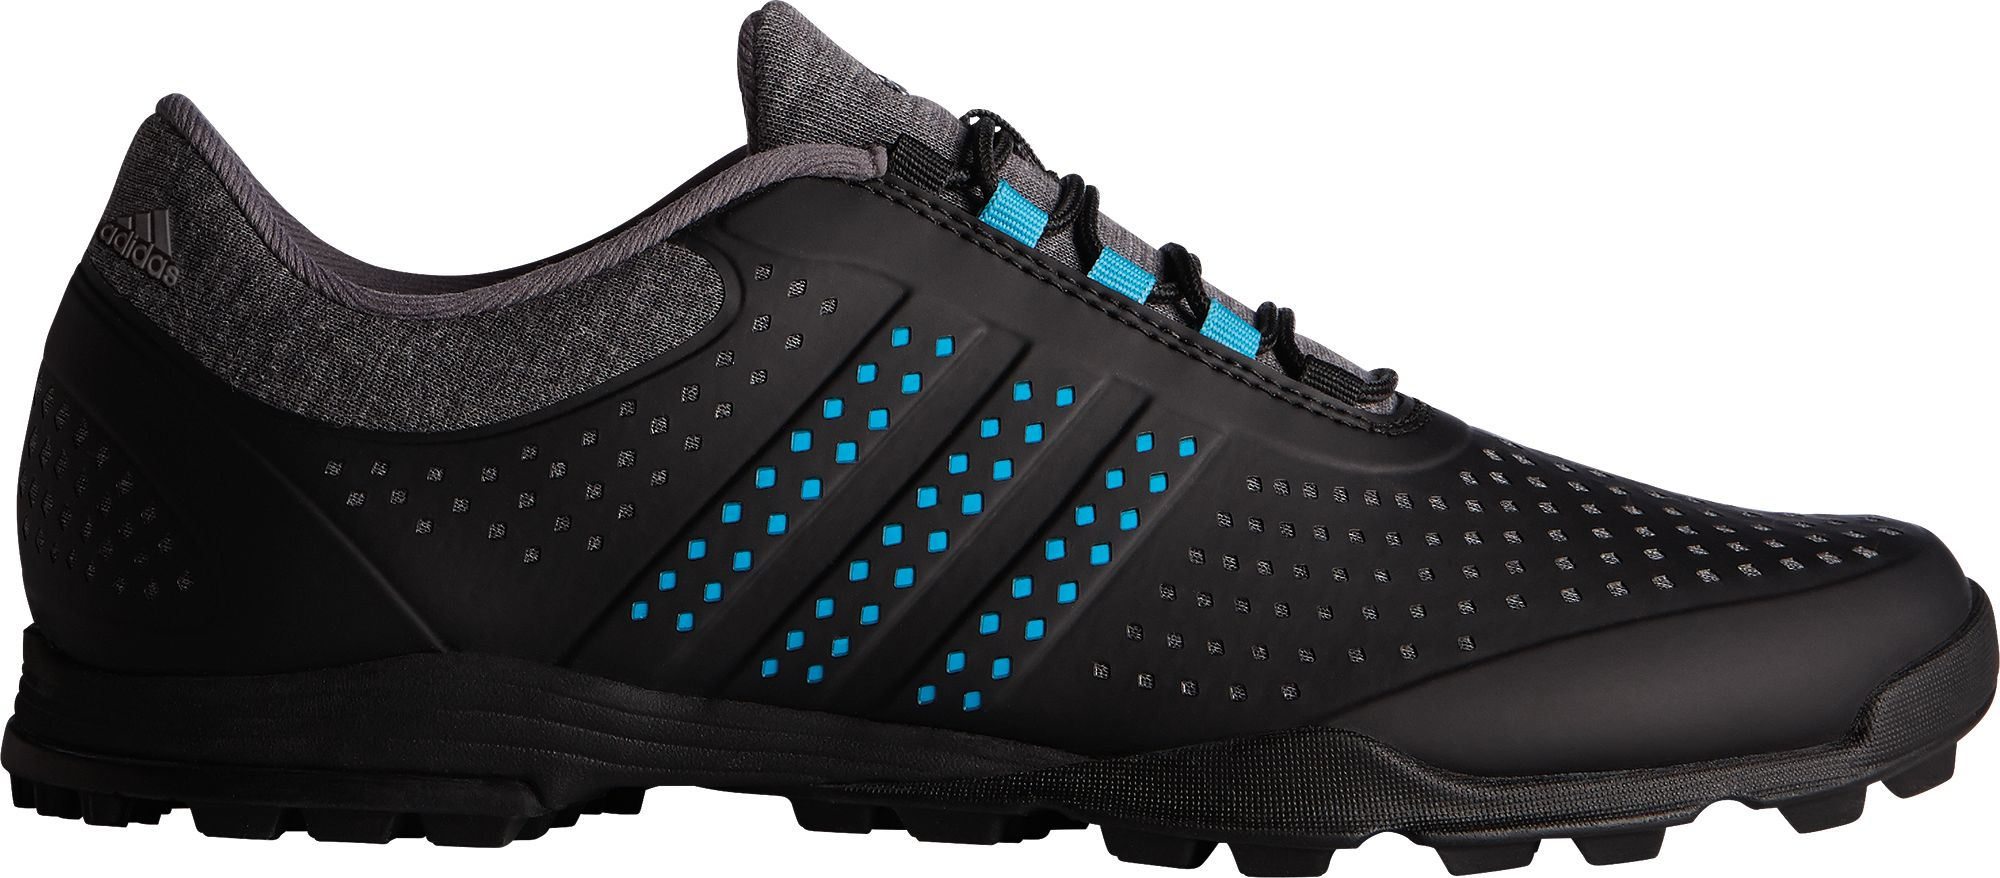 adidas womens. adidas women\u0027s adipure sport golf shoes womens